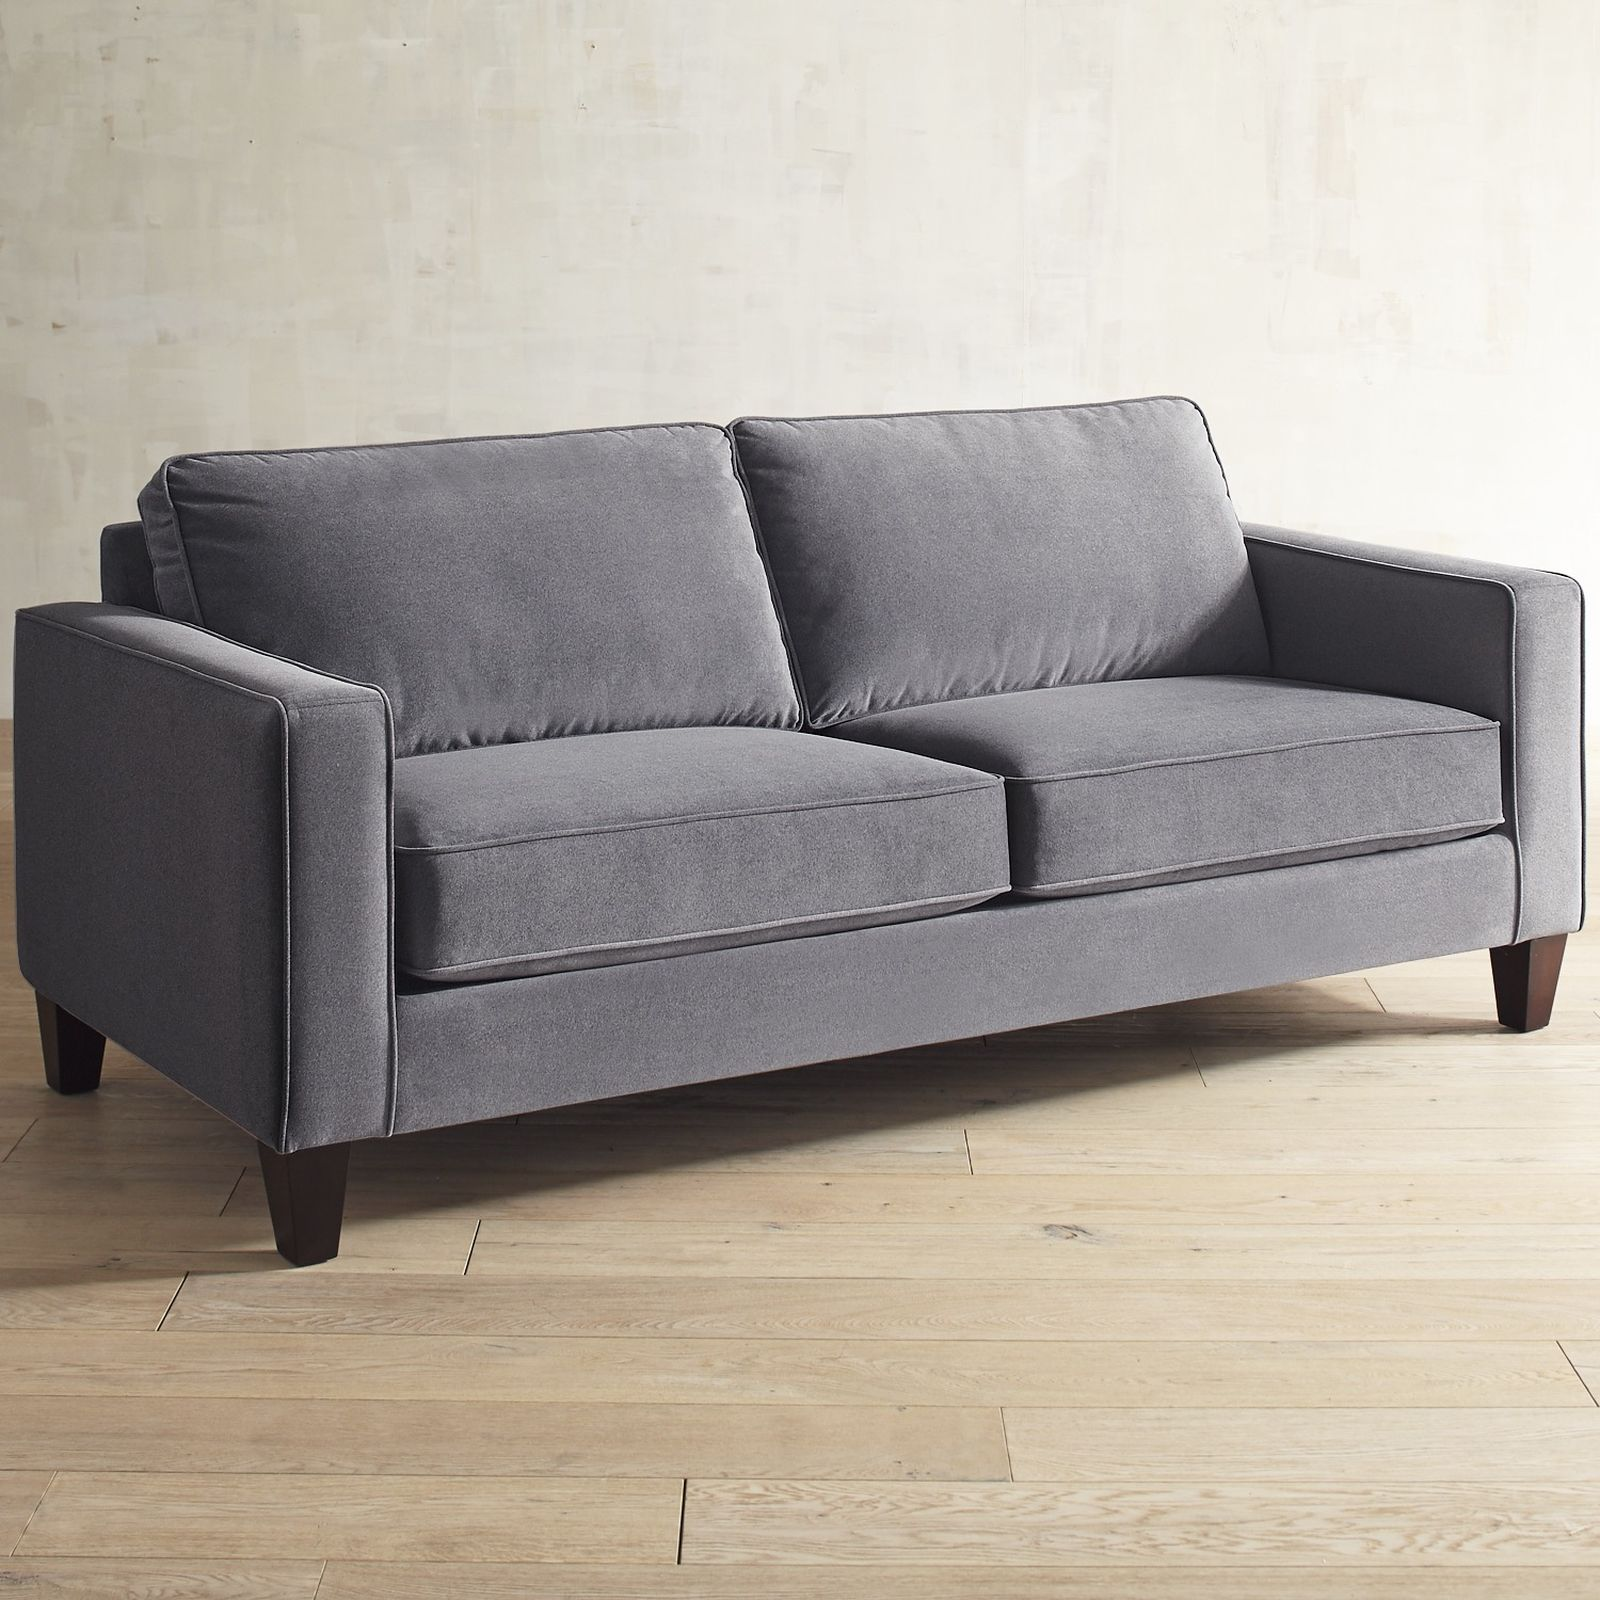 Genius Is In The Details, And Our Alton Sofa Has A Special Genius For  Relaxation